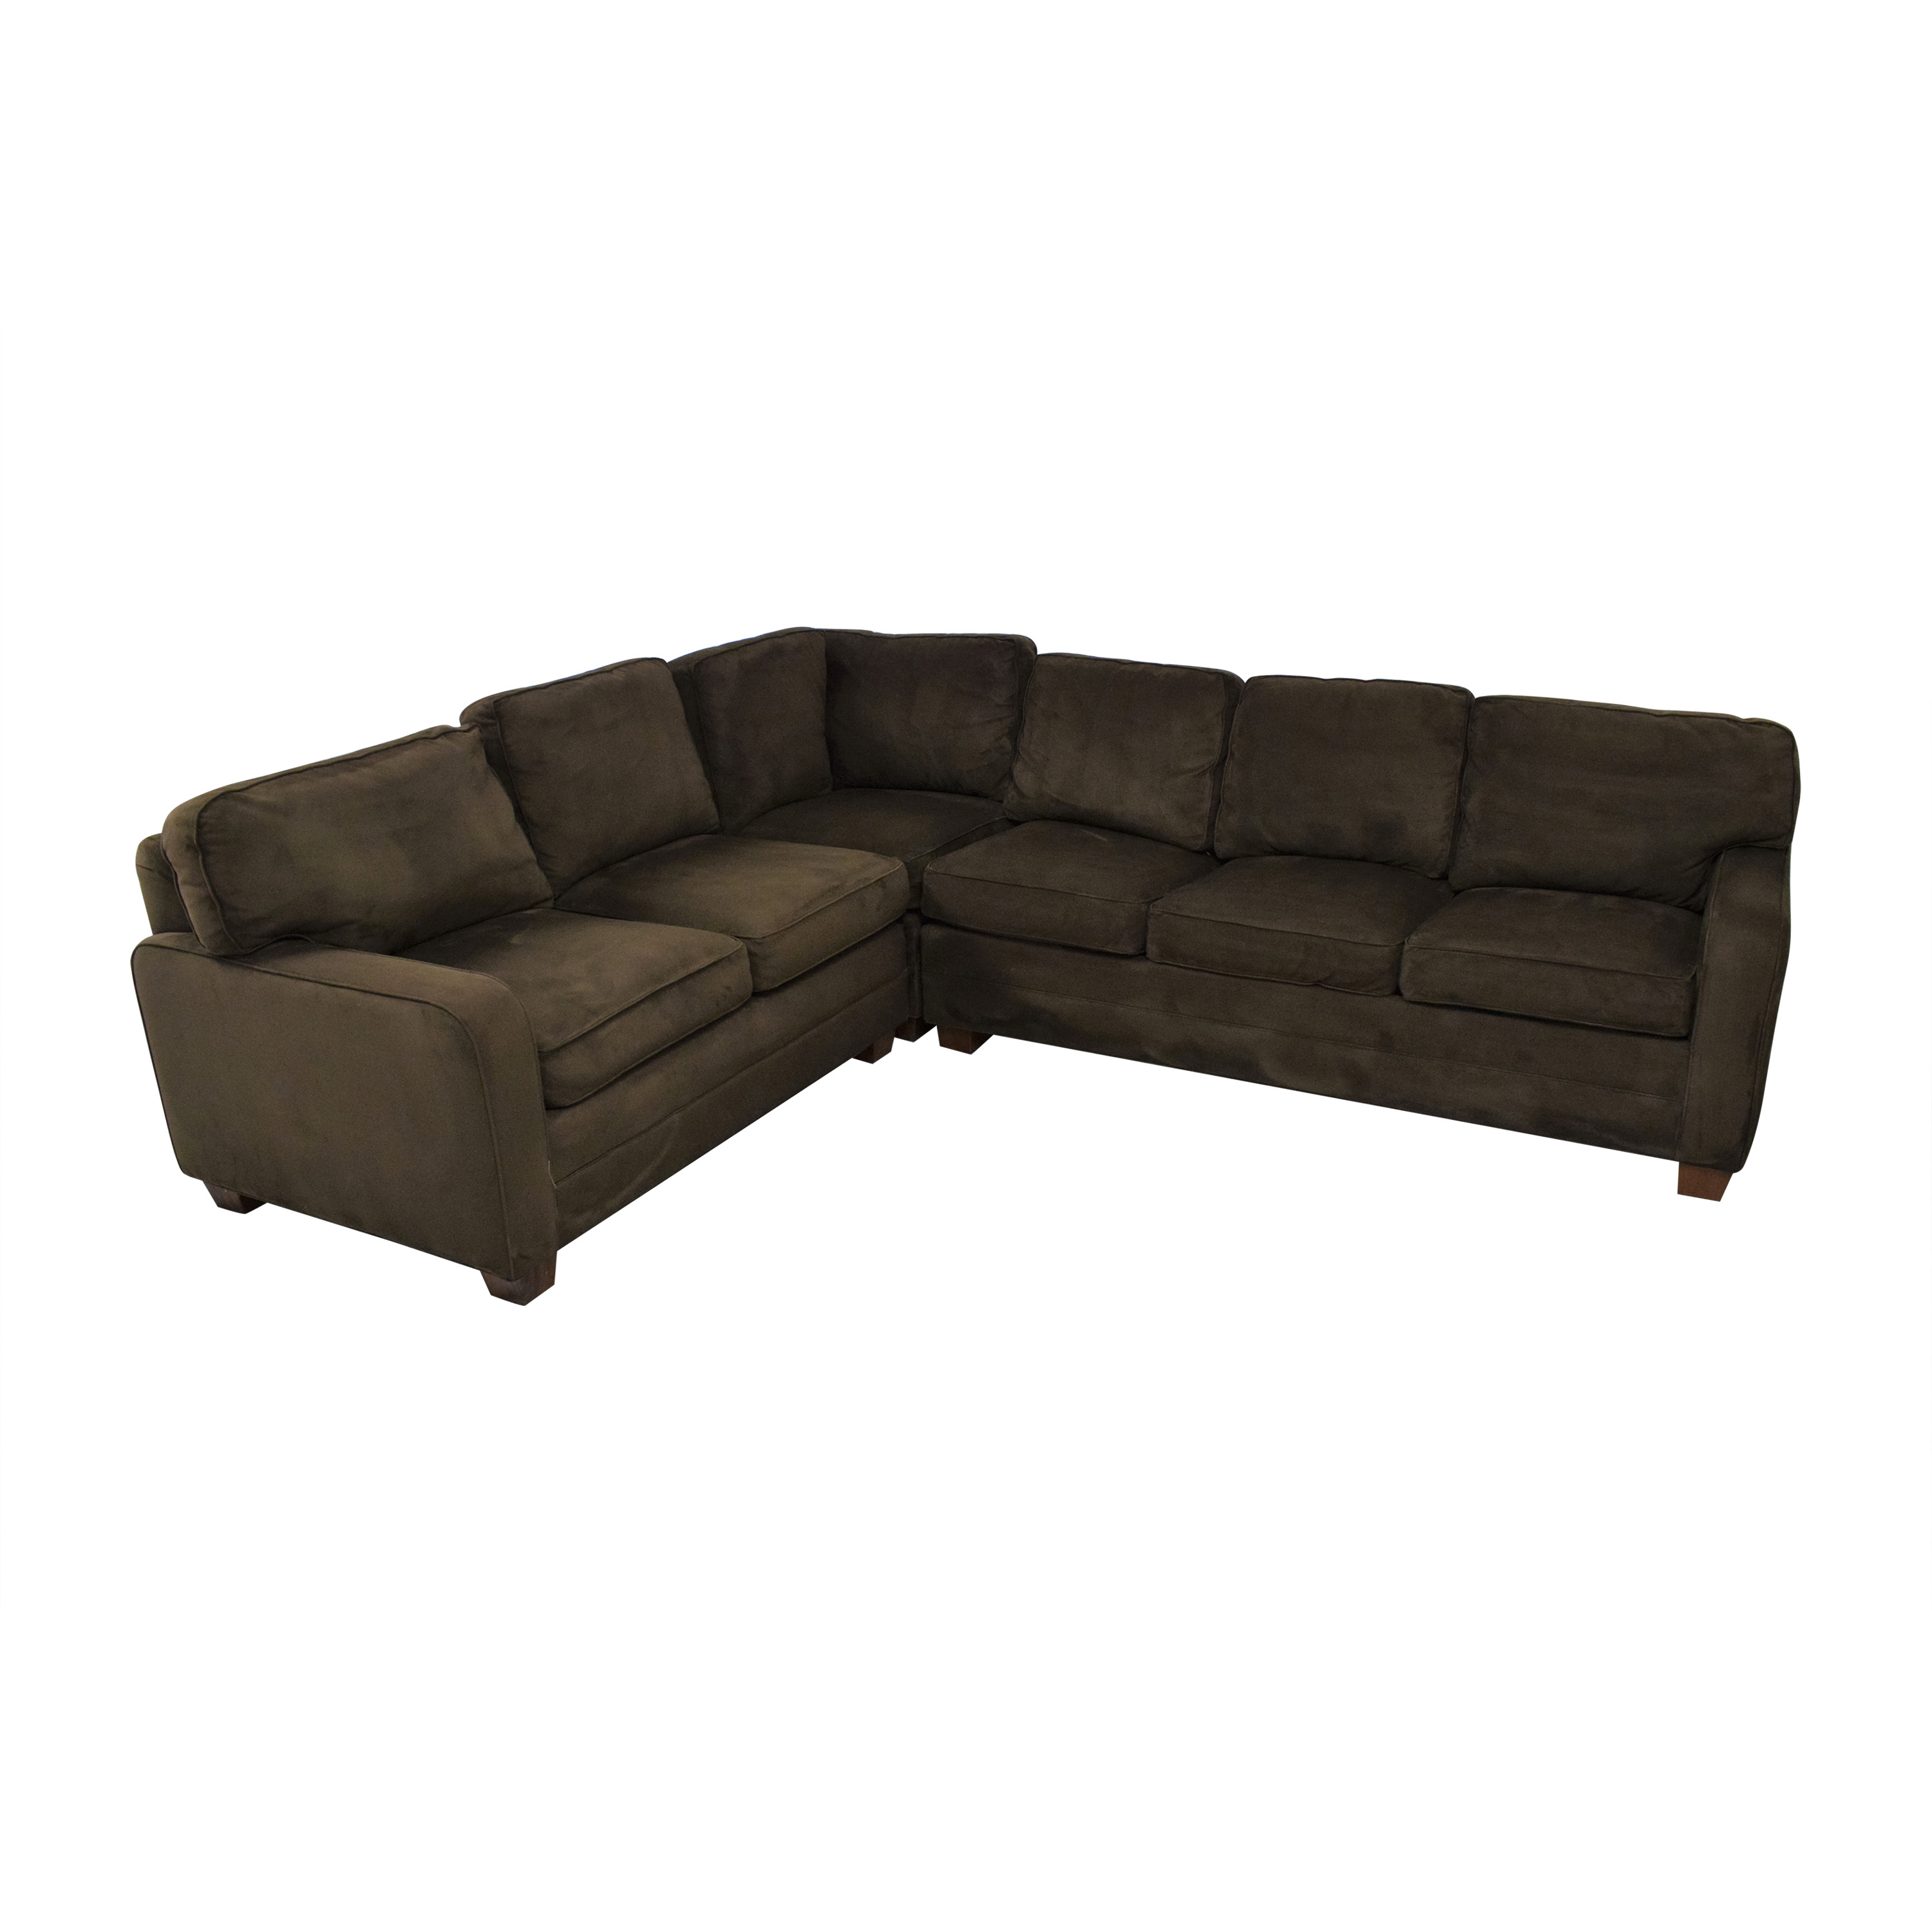 Taylor King Taylor King Brushed Velvet Queen Sectional Sofa price